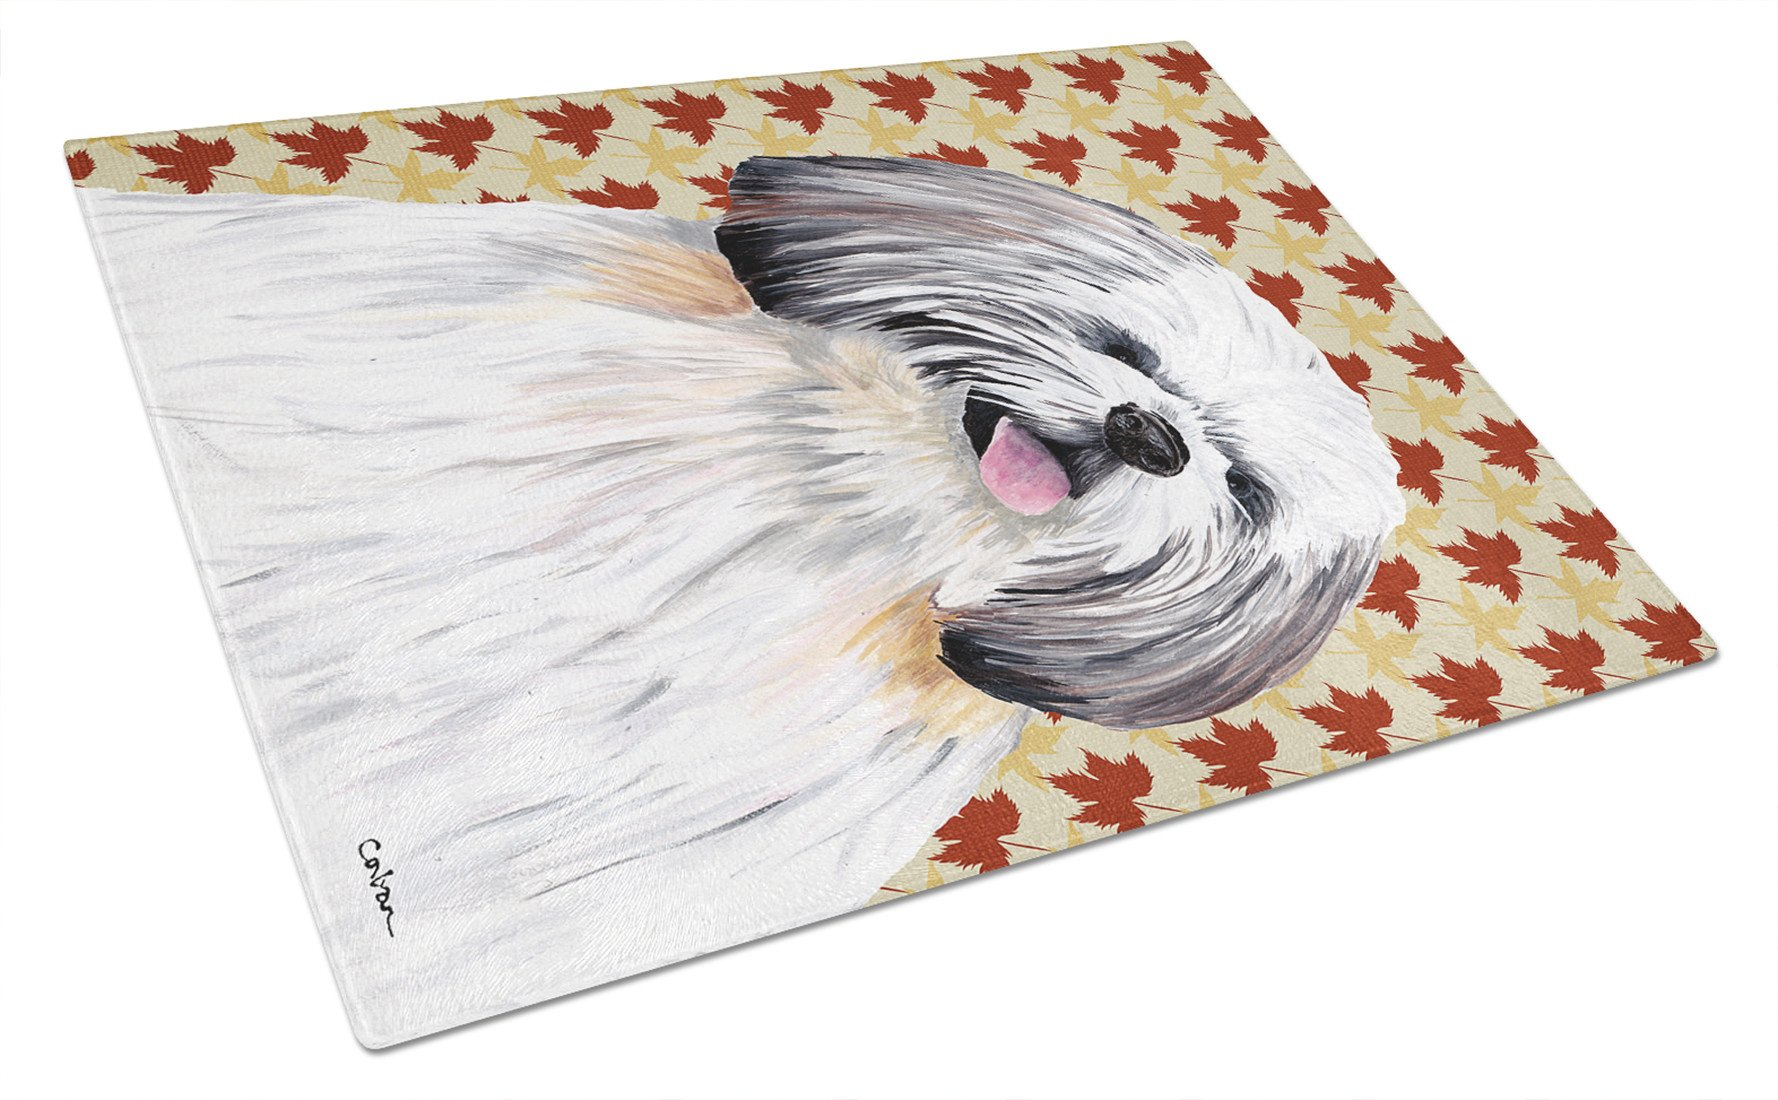 Shih Tzu Fall Leaves Portrait Glass Cutting Board Large by Caroline's Treasures